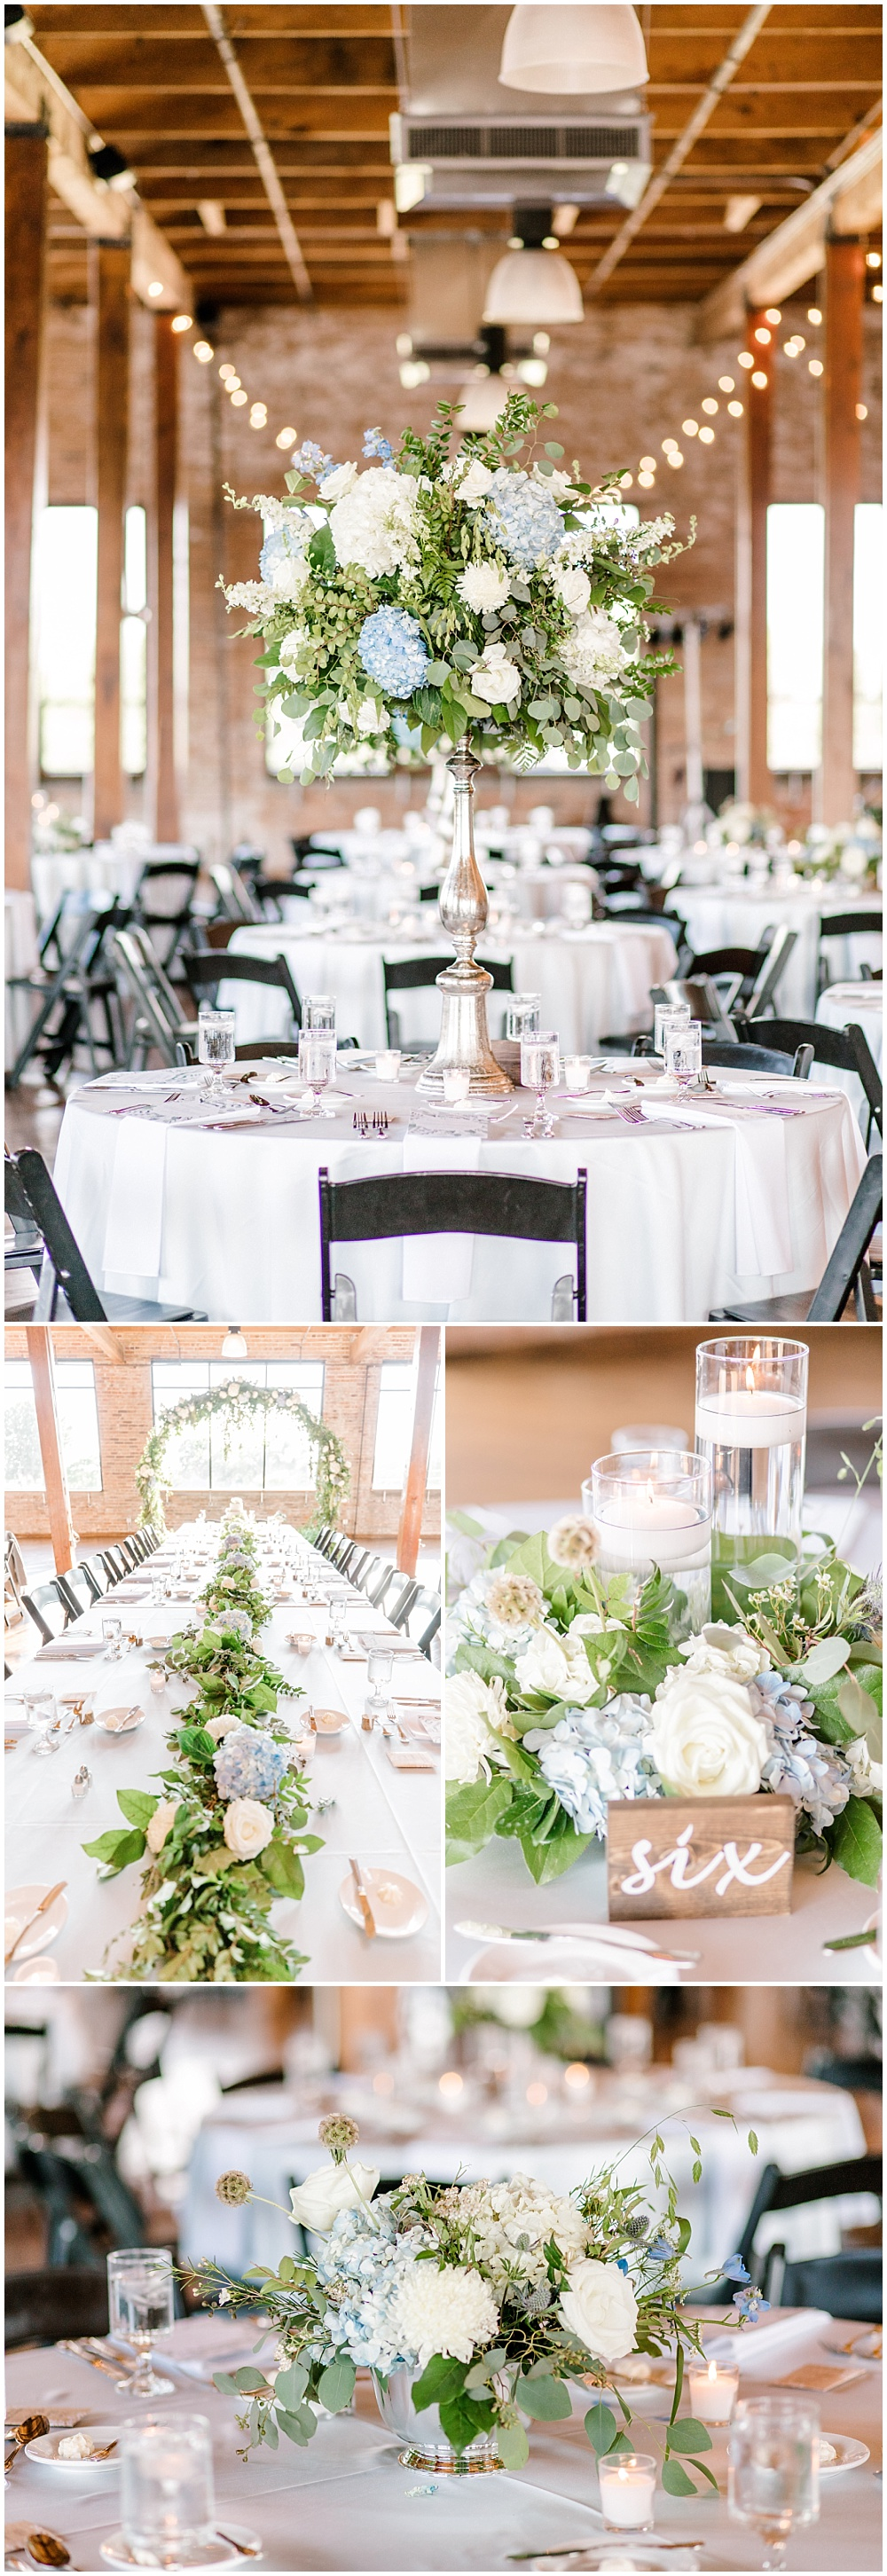 Floral and greenery Head Table arch with greenery cascading down the center; blue and white wedding flowers | NFL Player Nick Martin's rustic chic summer wedding at the Biltwell Event Center